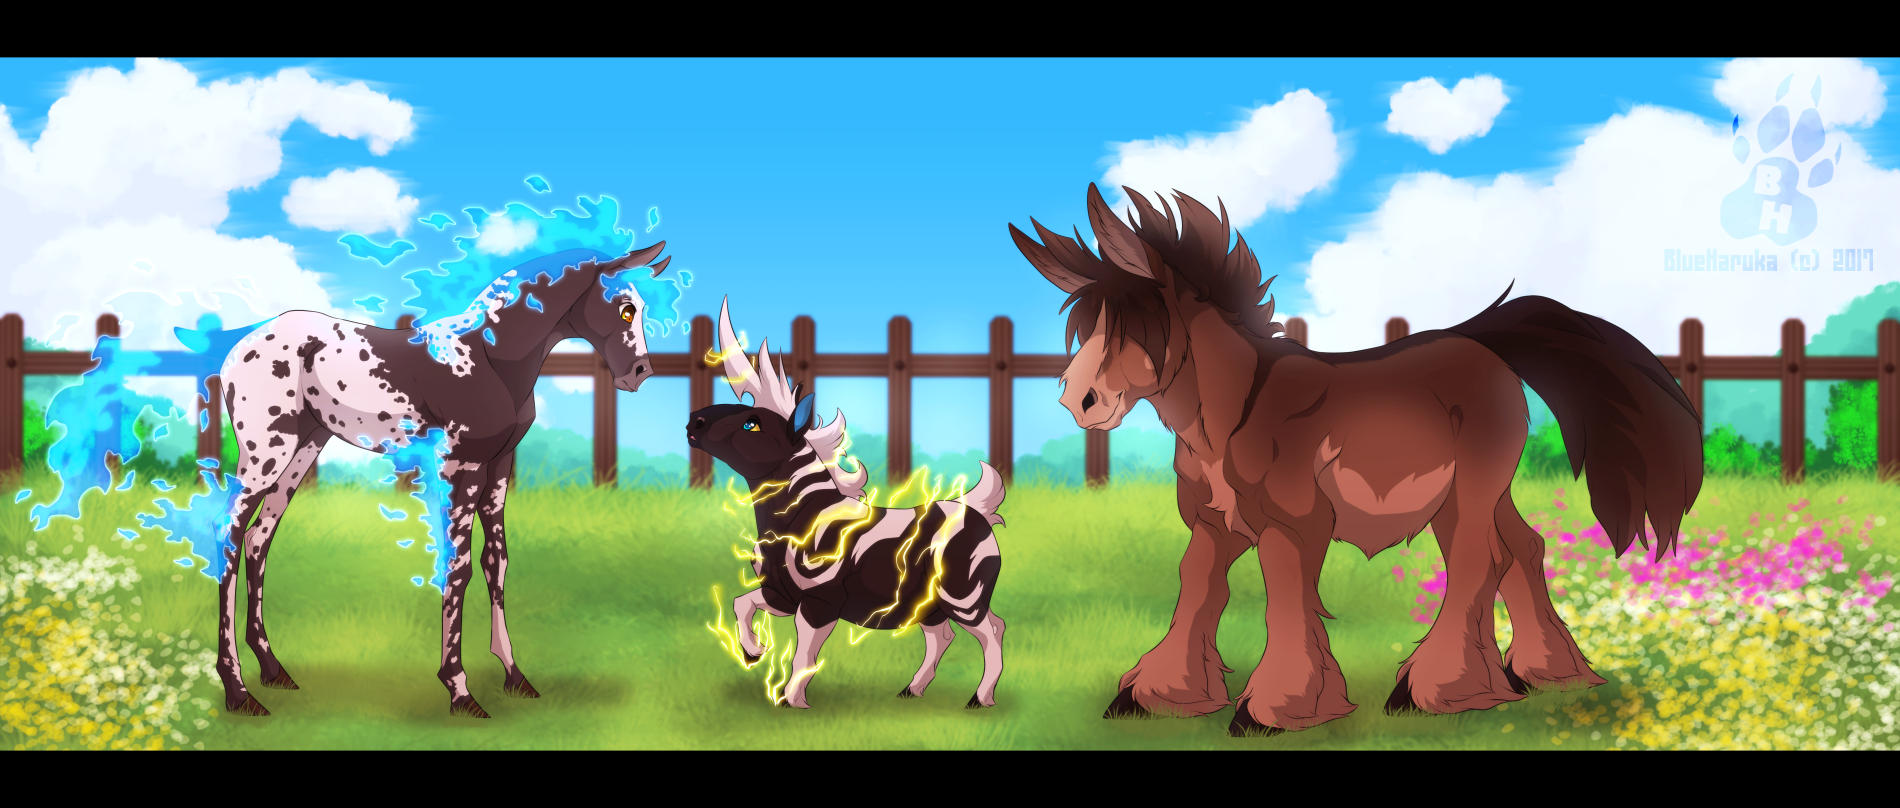 Out on the Ranch by blueharuka